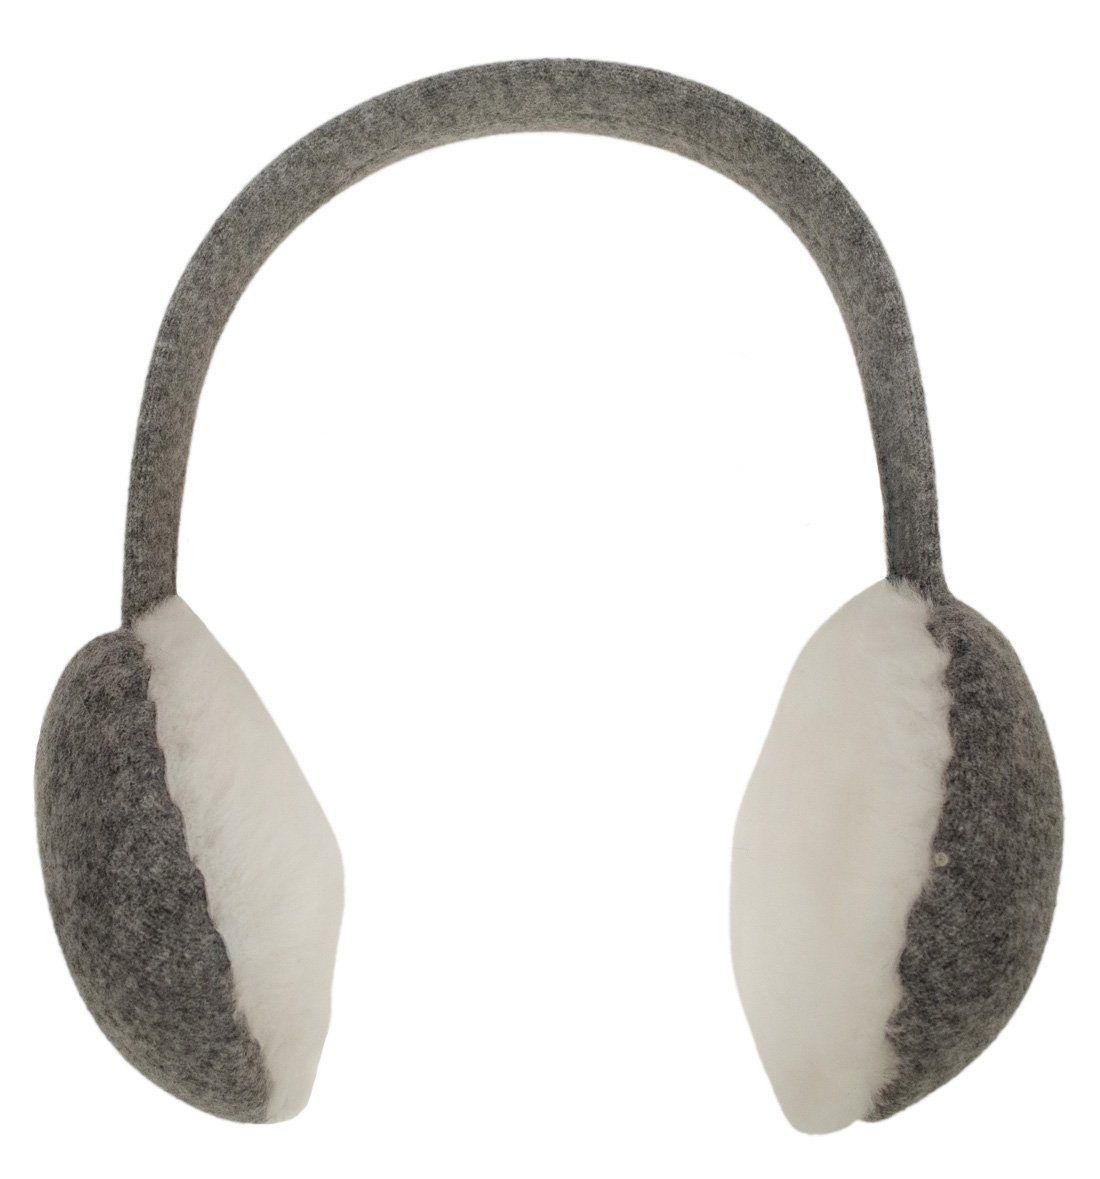 Lauren Ralph Lauren Women's Faux-Fur Shearling Earmuffs Ear Warmers-G-One Size